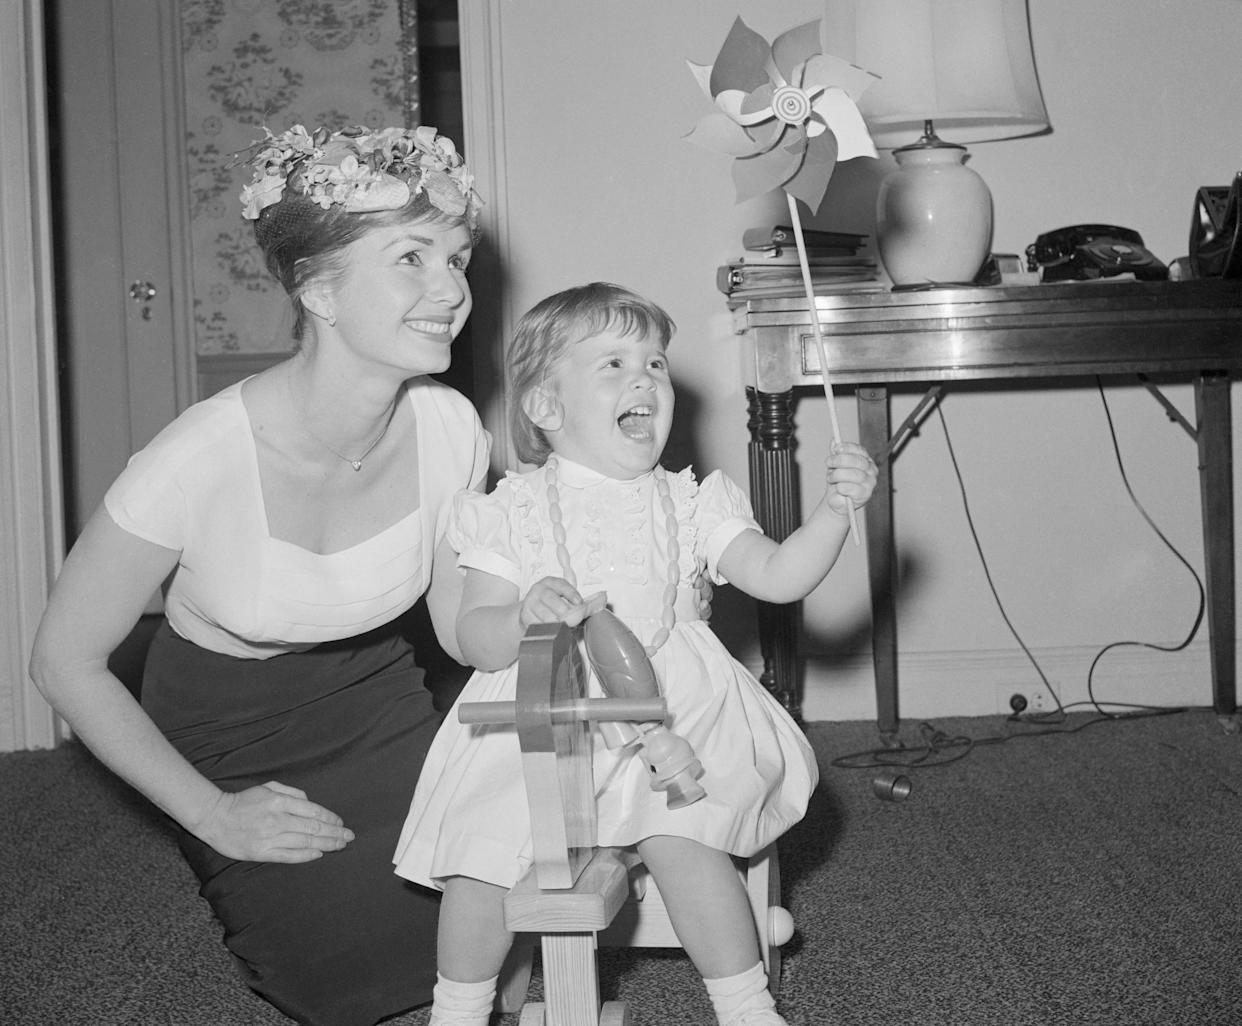 Debbie Reynolds is interviewed in her hotel room while 2-year-old Carrie squeals with delight and brandishes a pinwheel.